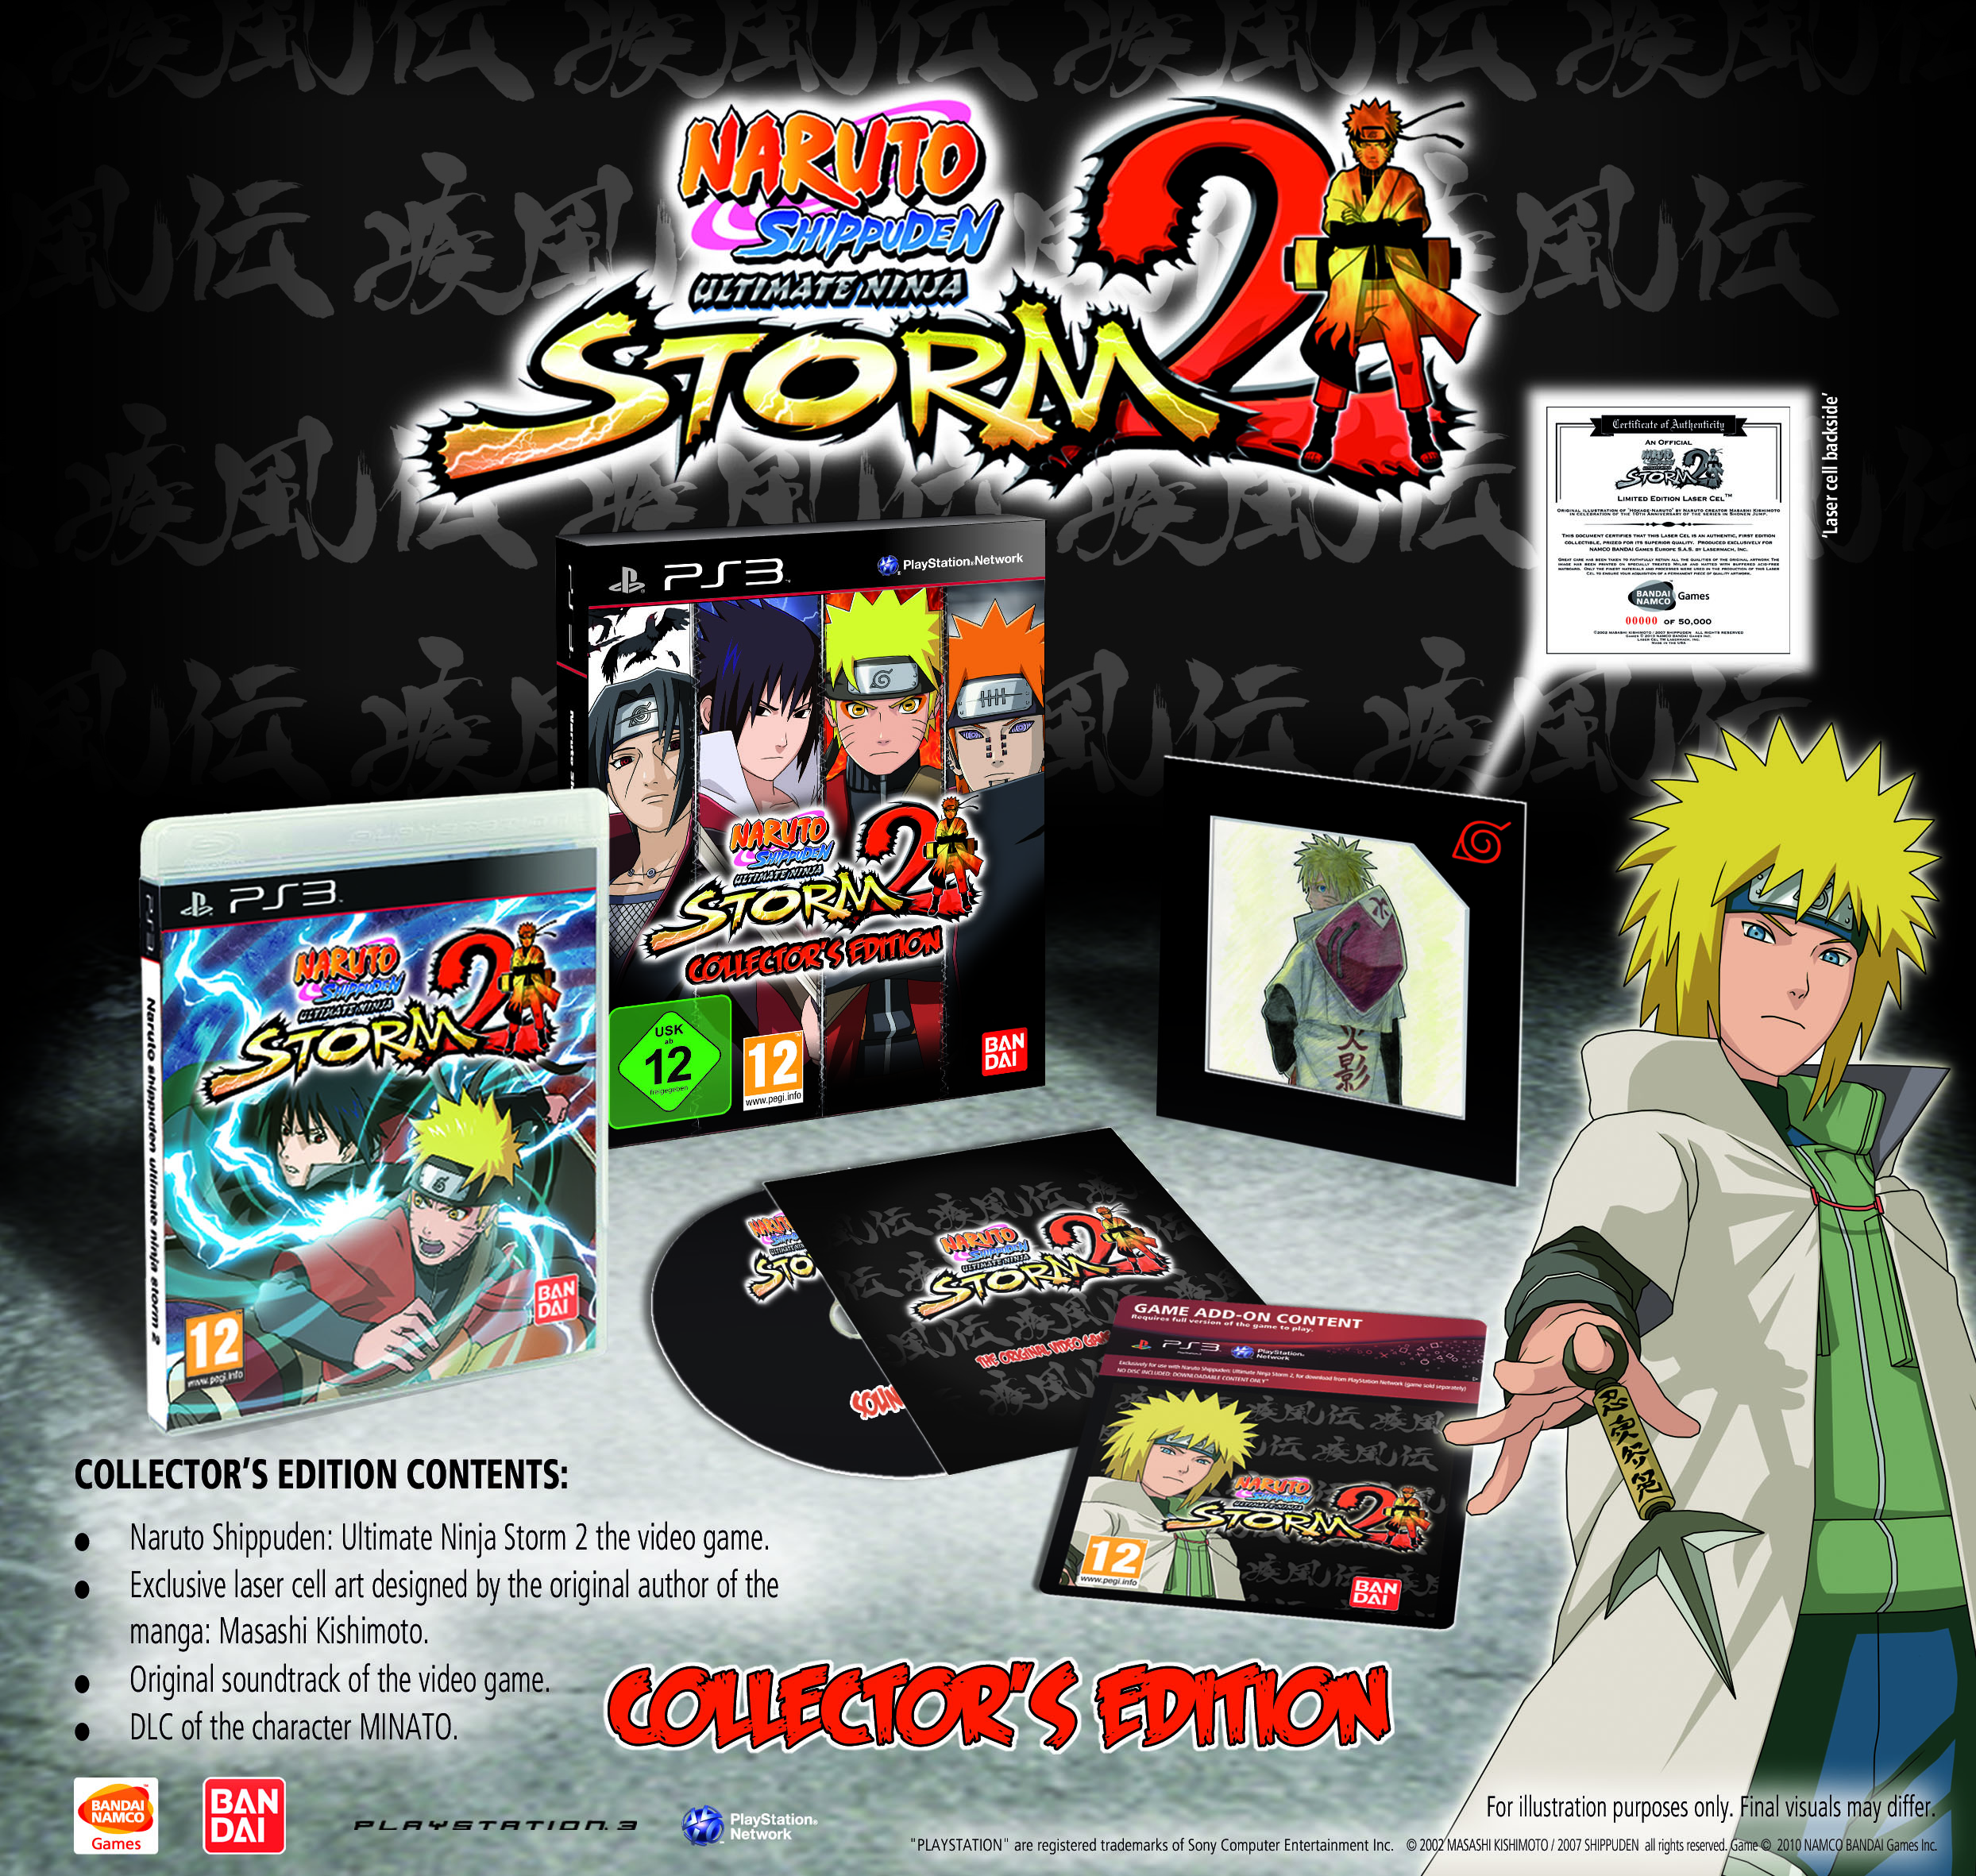 Naruto Shippuden Storm2 PS3 collector Divers